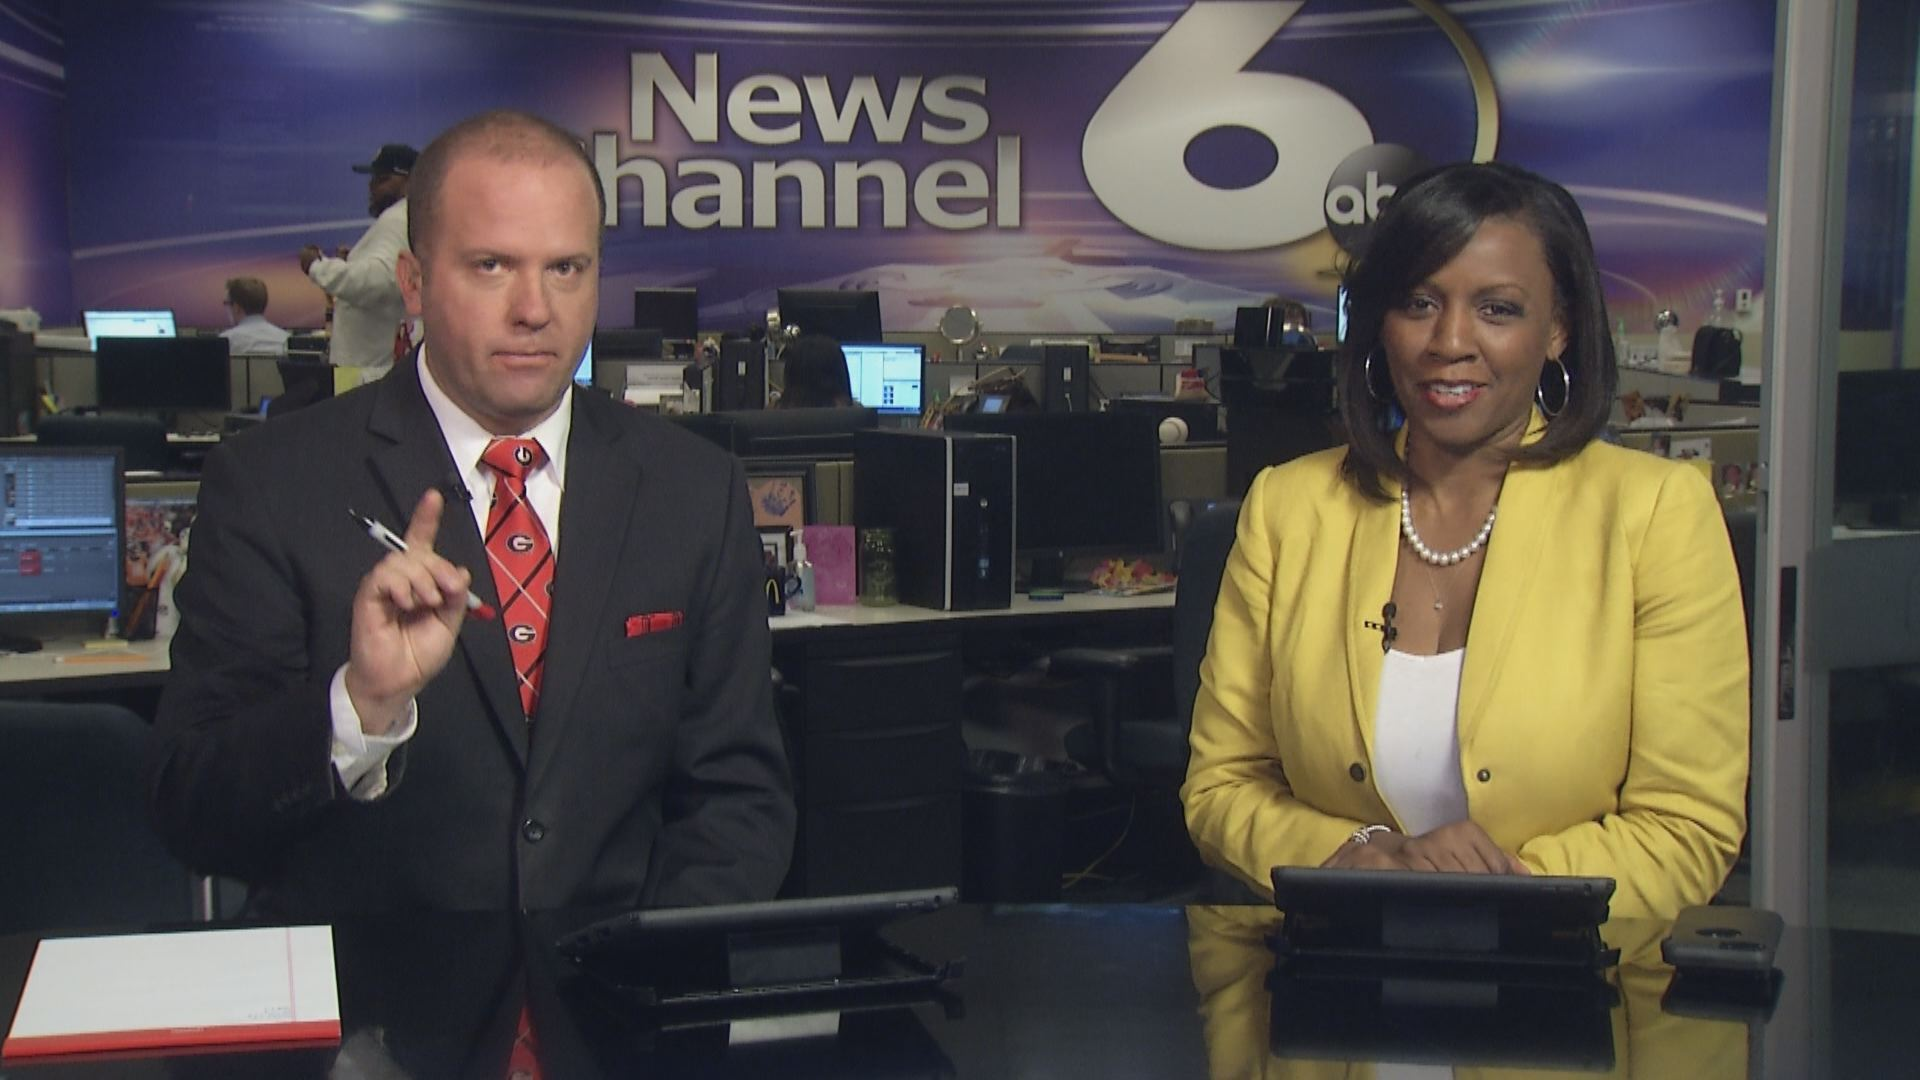 John Hart and Kimberely Scott Continue The Conversation at wjbf.com during NewsChannel 6 at 5_30 - September 23, 2016_181966